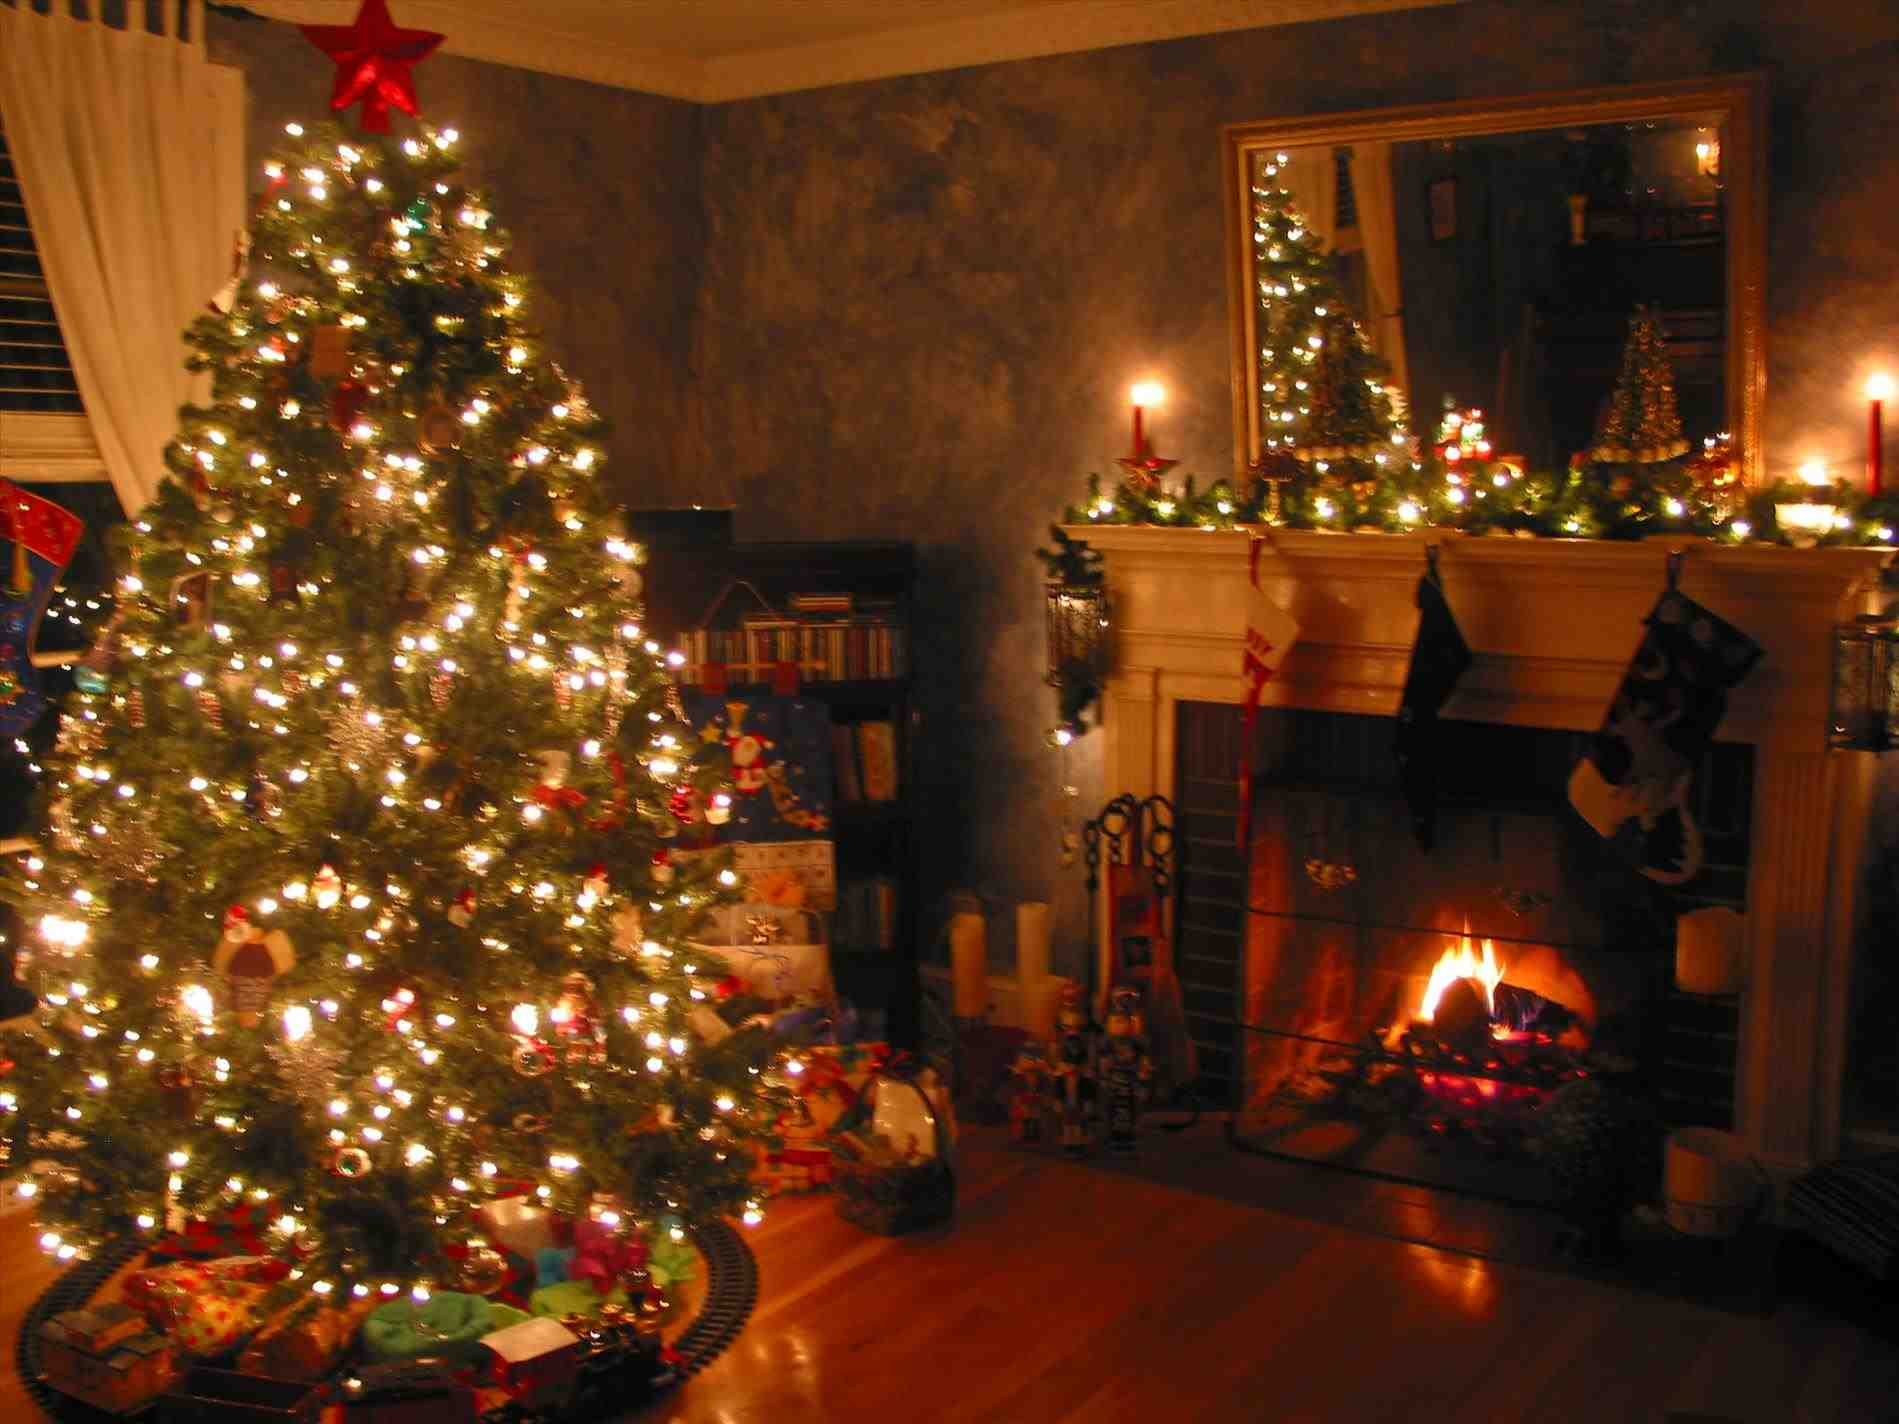 Christmas Chimney Wallpapers - Wallpaper Cave